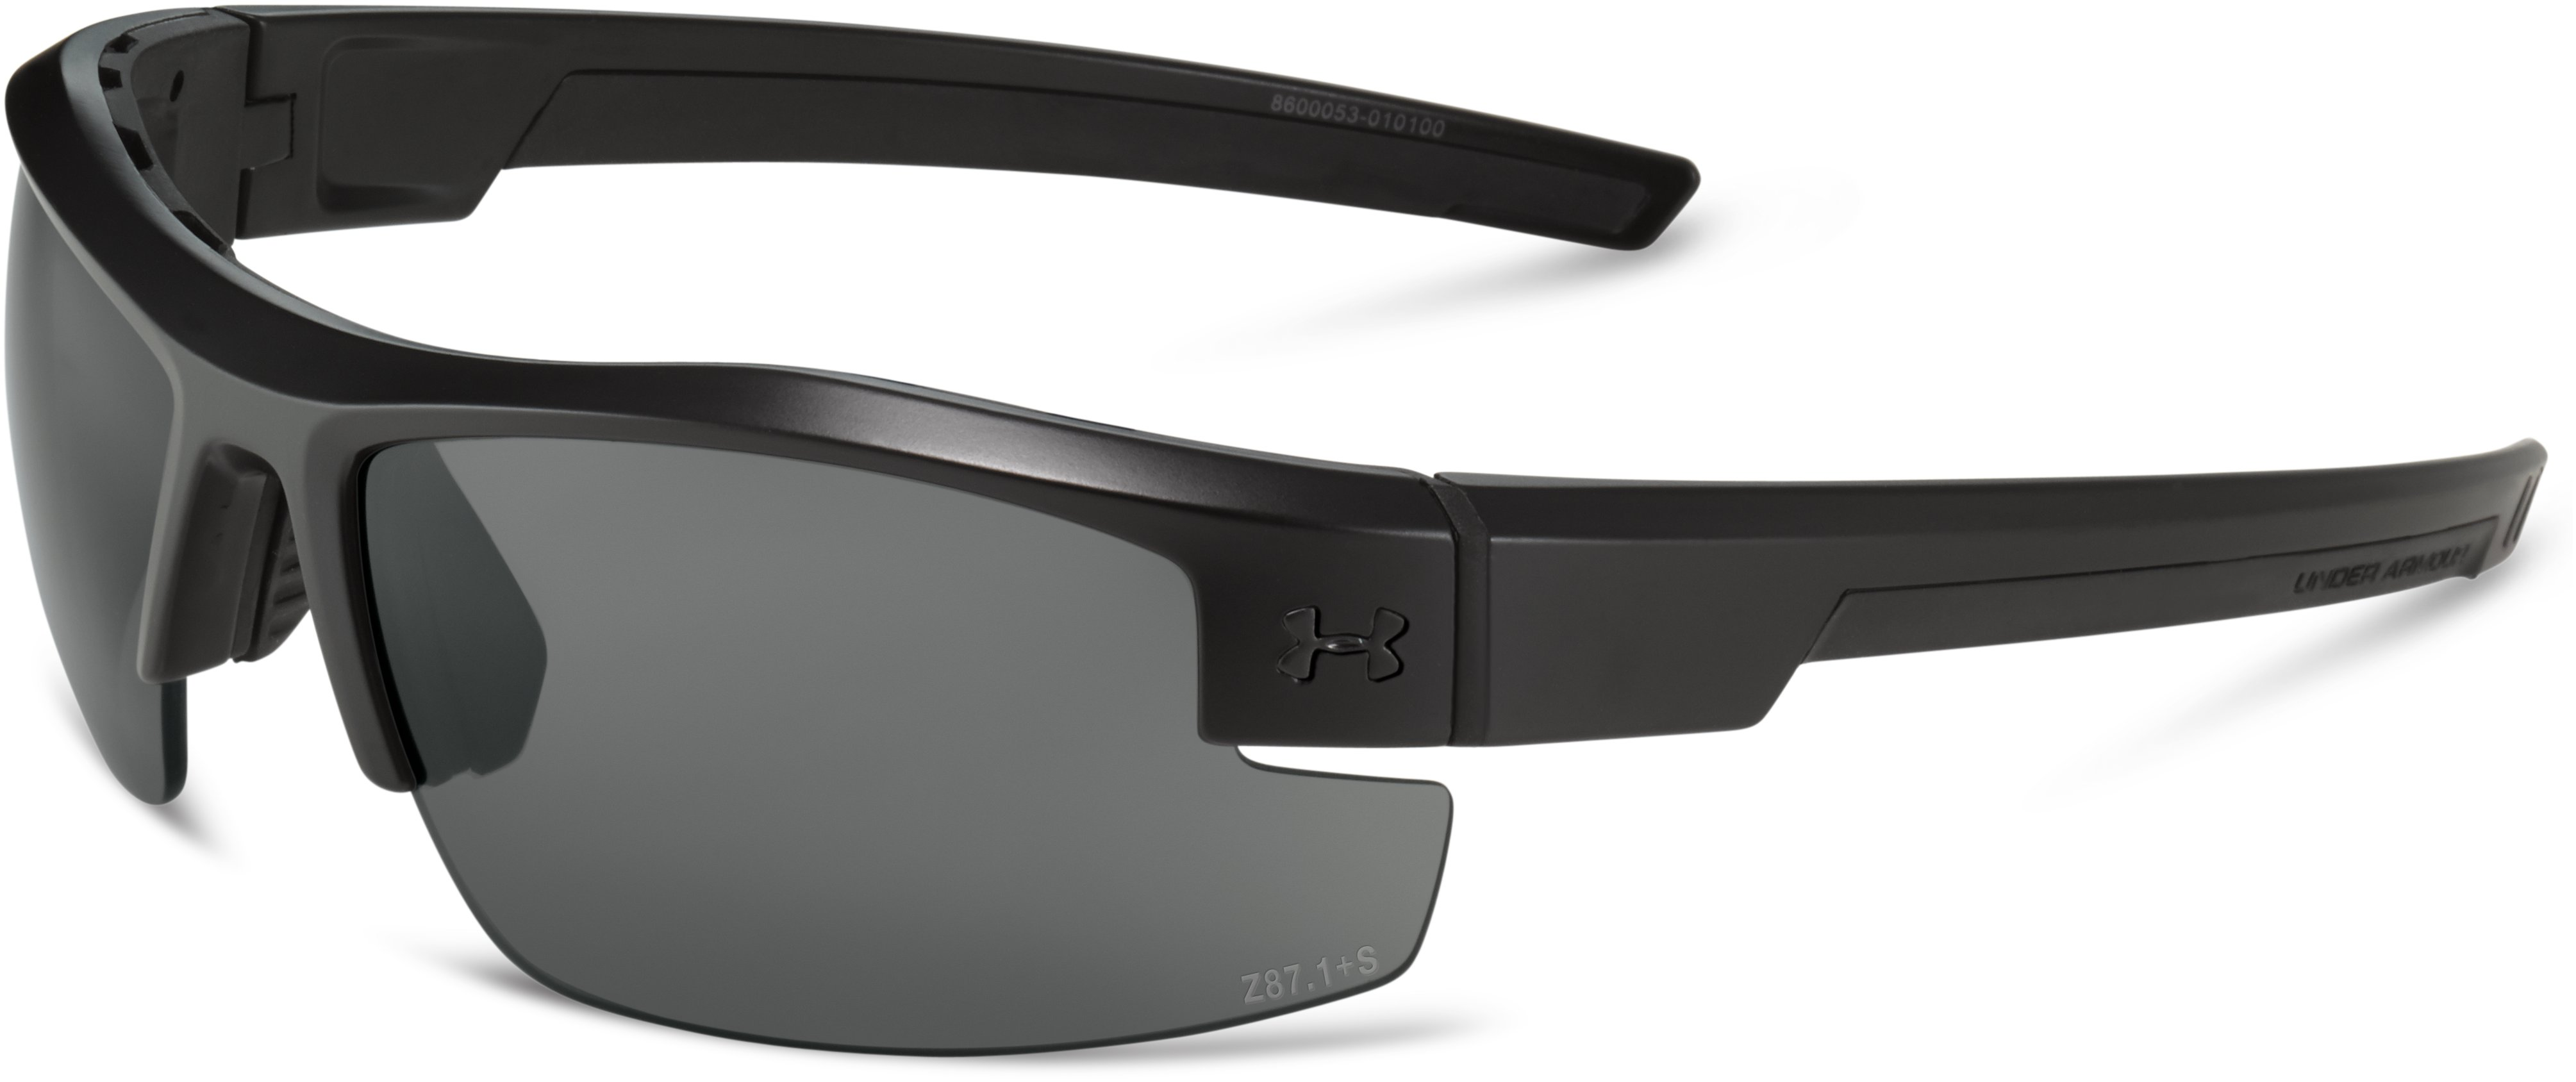 UA Reliance Tactical Sunglasses, Satin Black